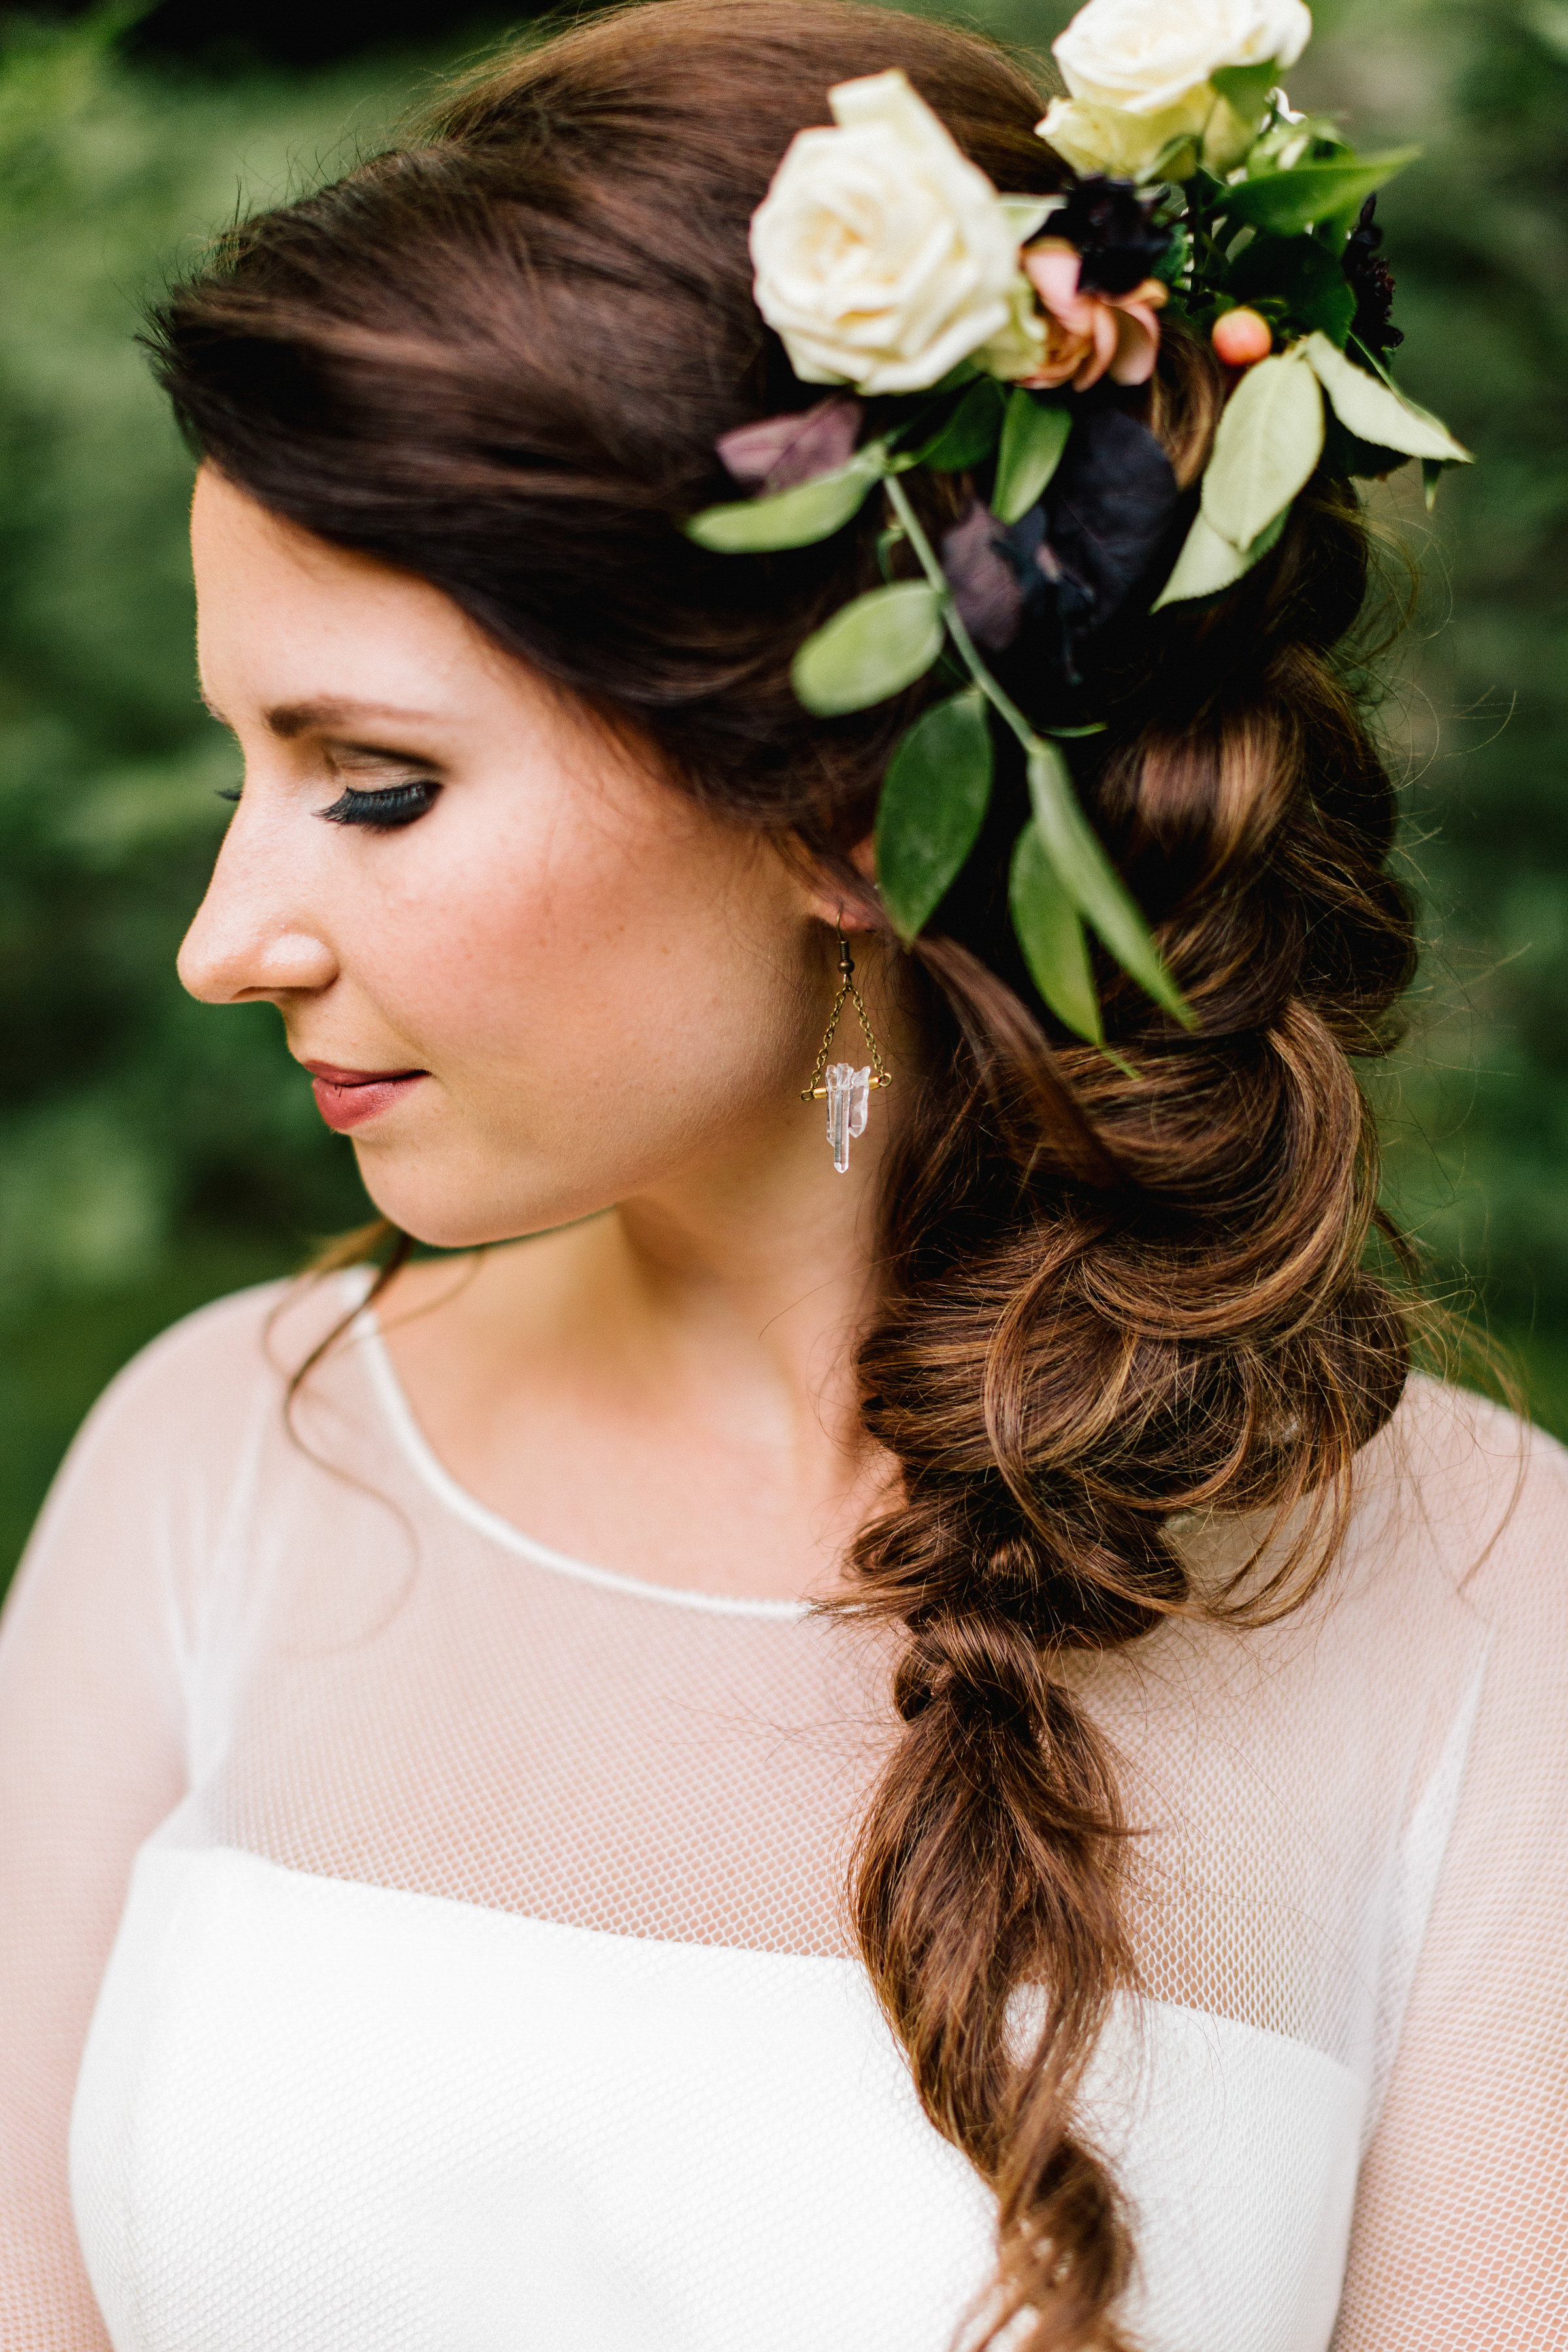 Allison_Hopperstad_Photography_Acowsay_Wedding_Floral_Headpiece.JPG